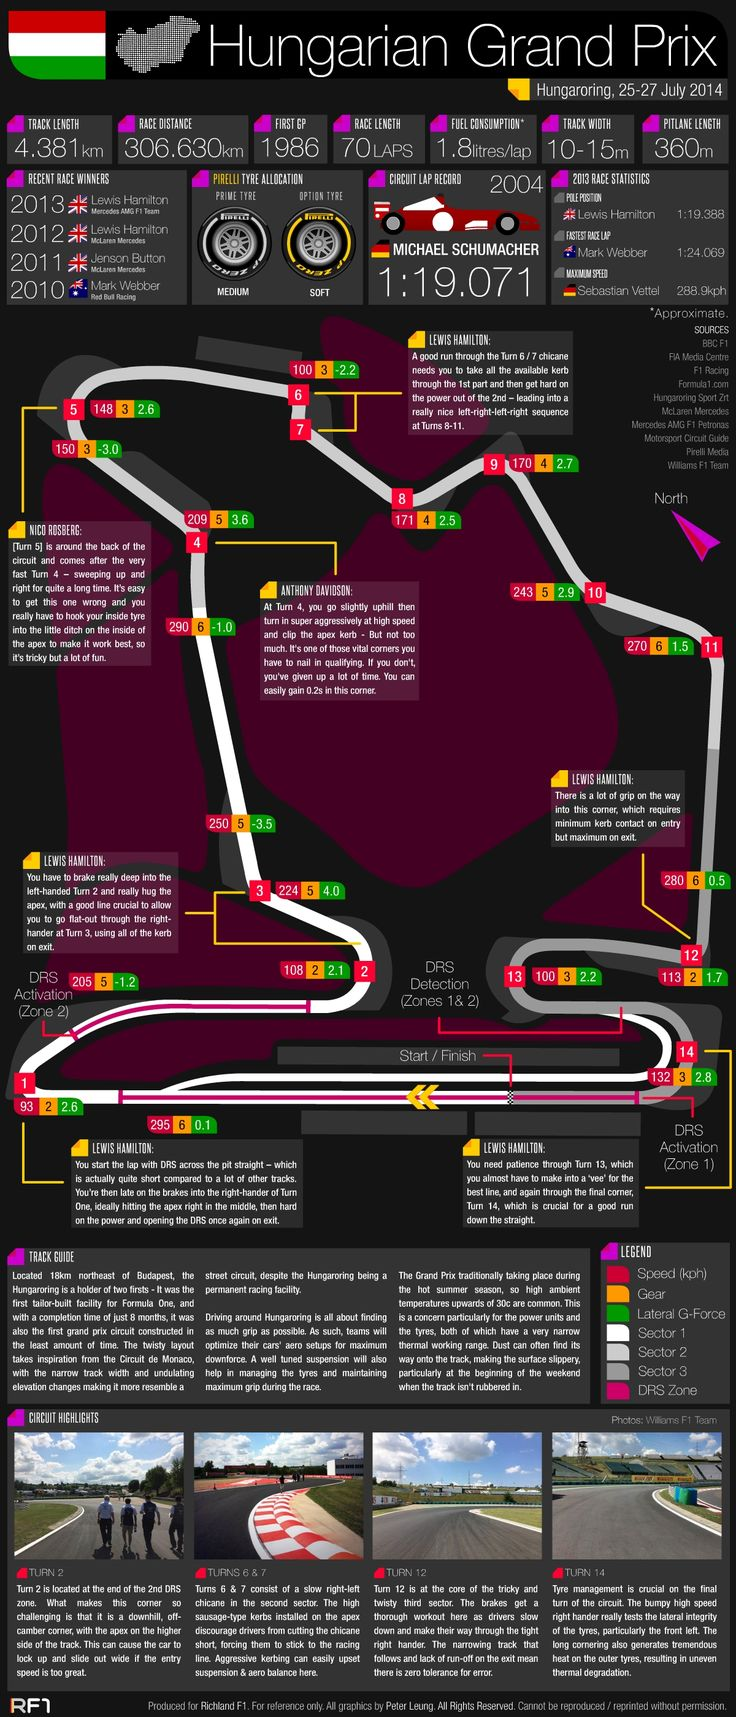 Grand Prix Guide - 2014 Hungarian Grand Prix #F1